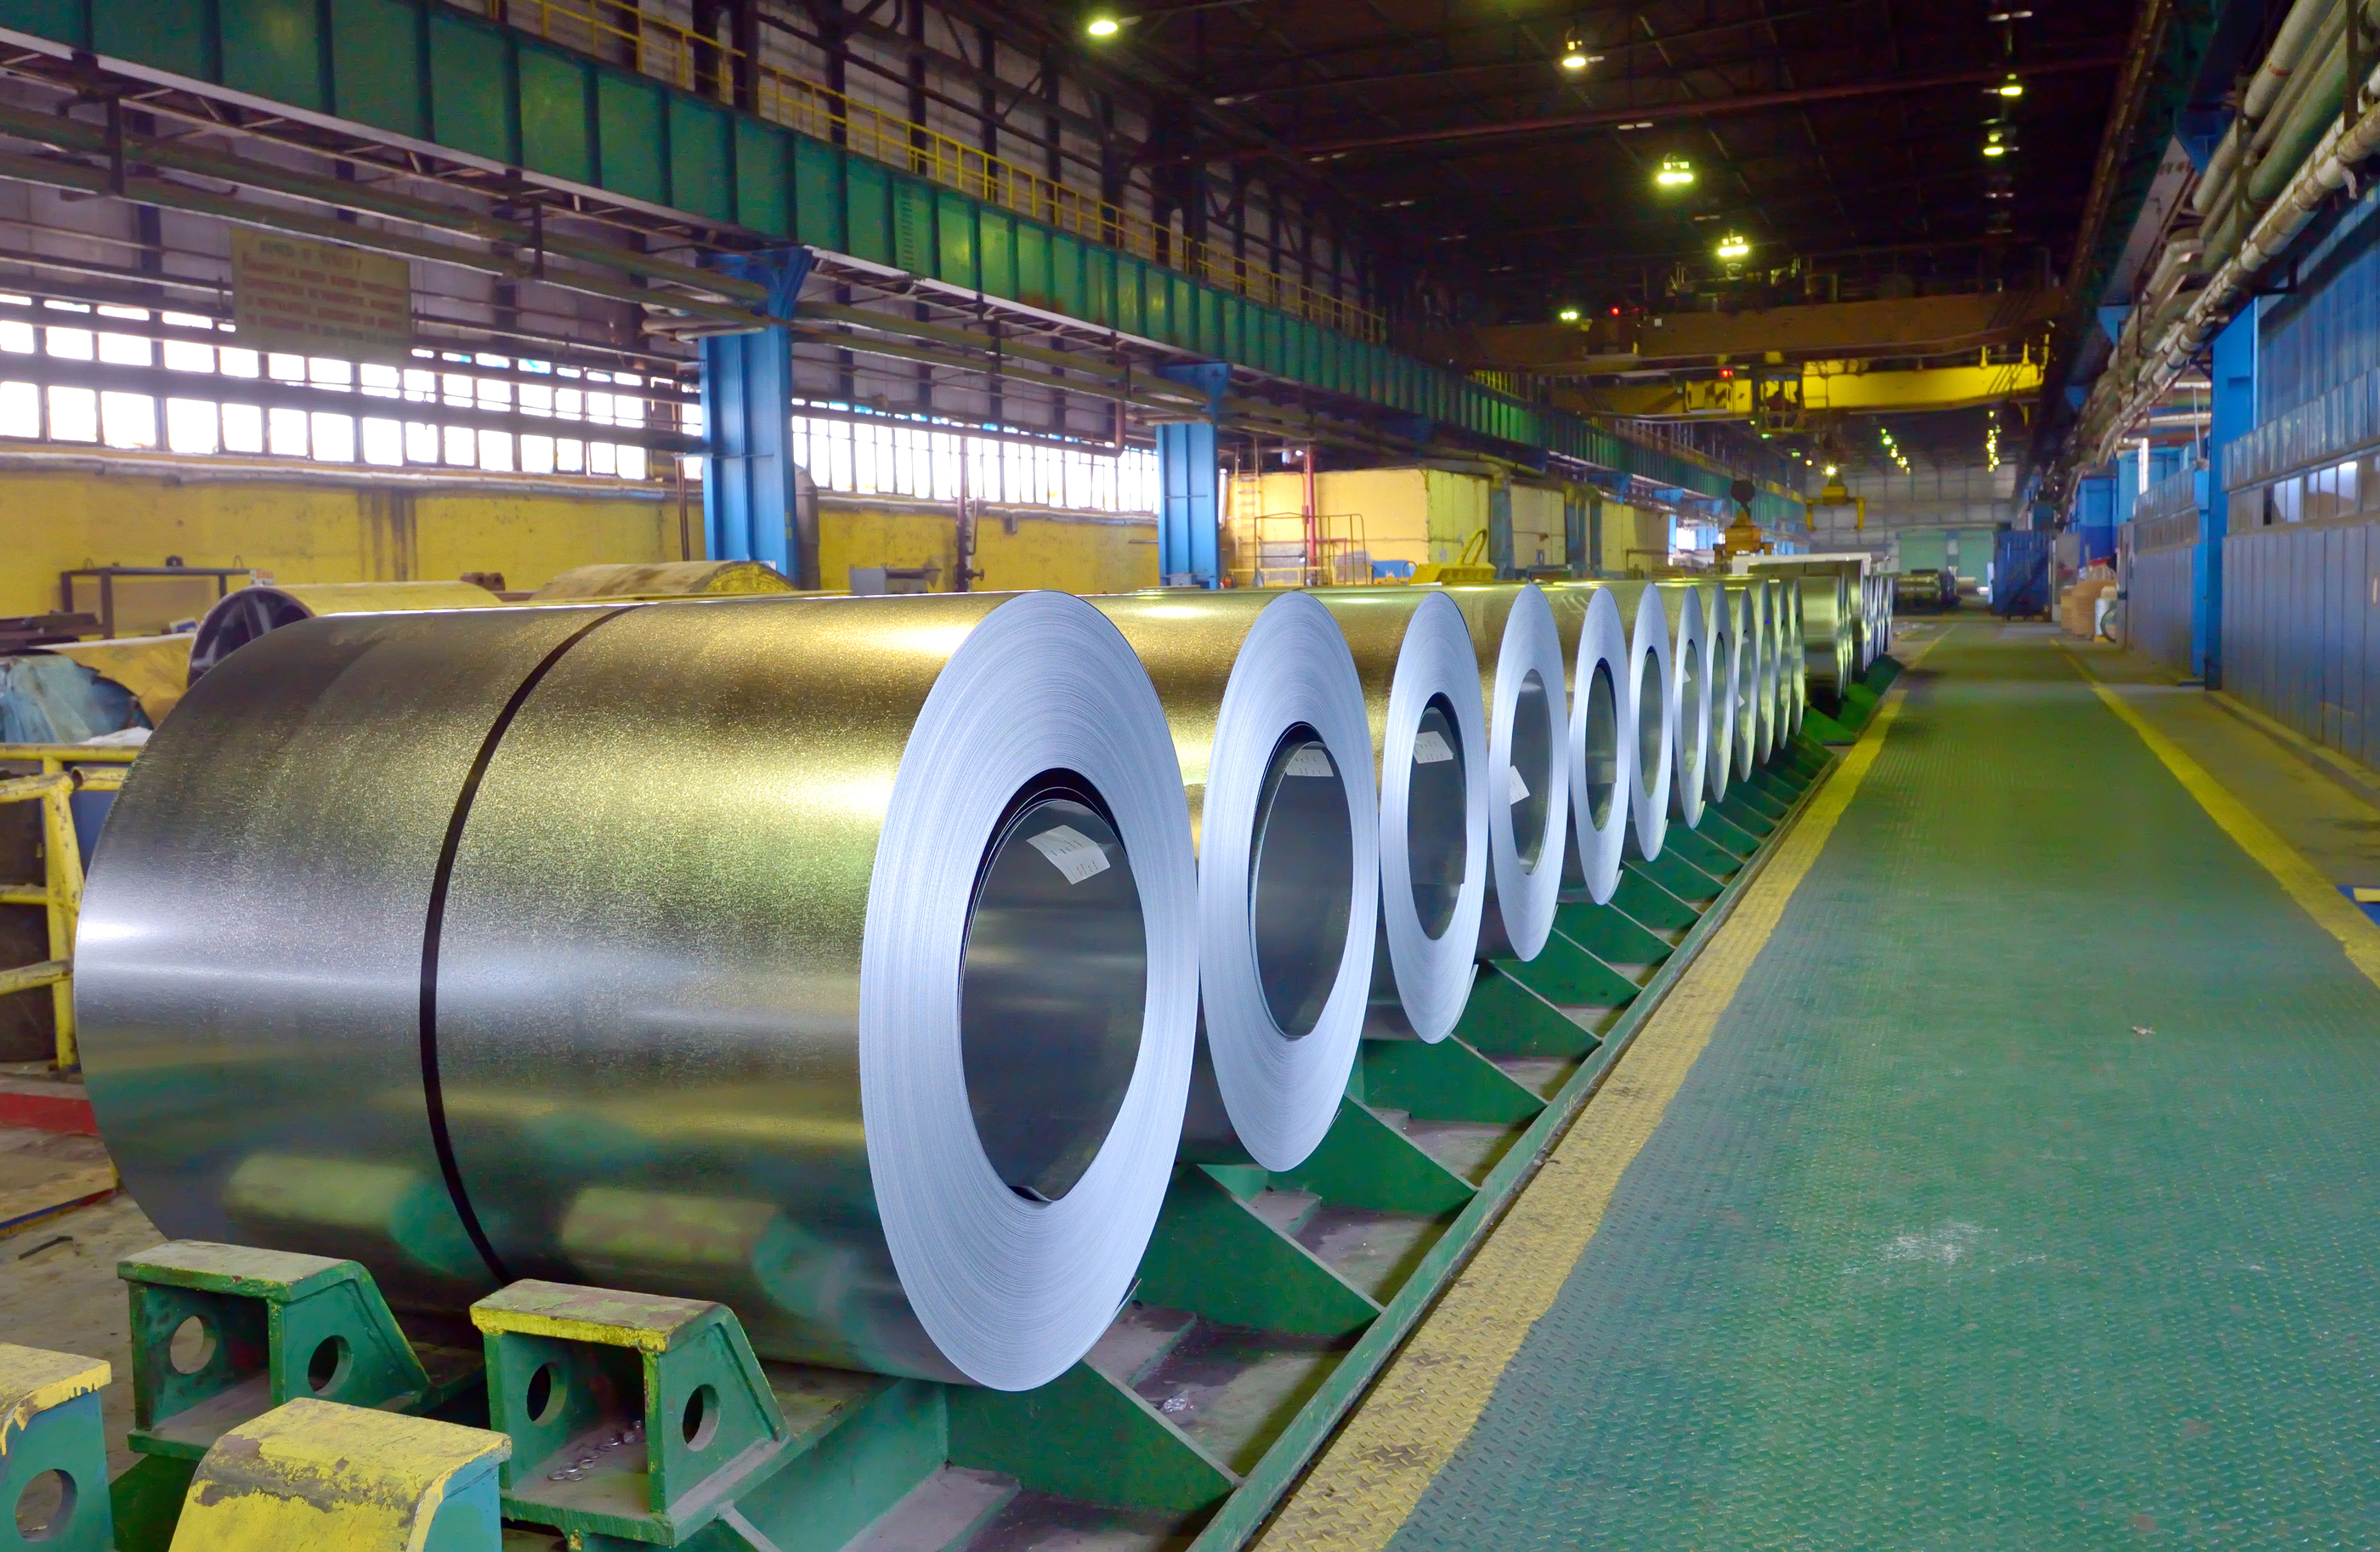 Rolls Of Steel Sheet.jpg